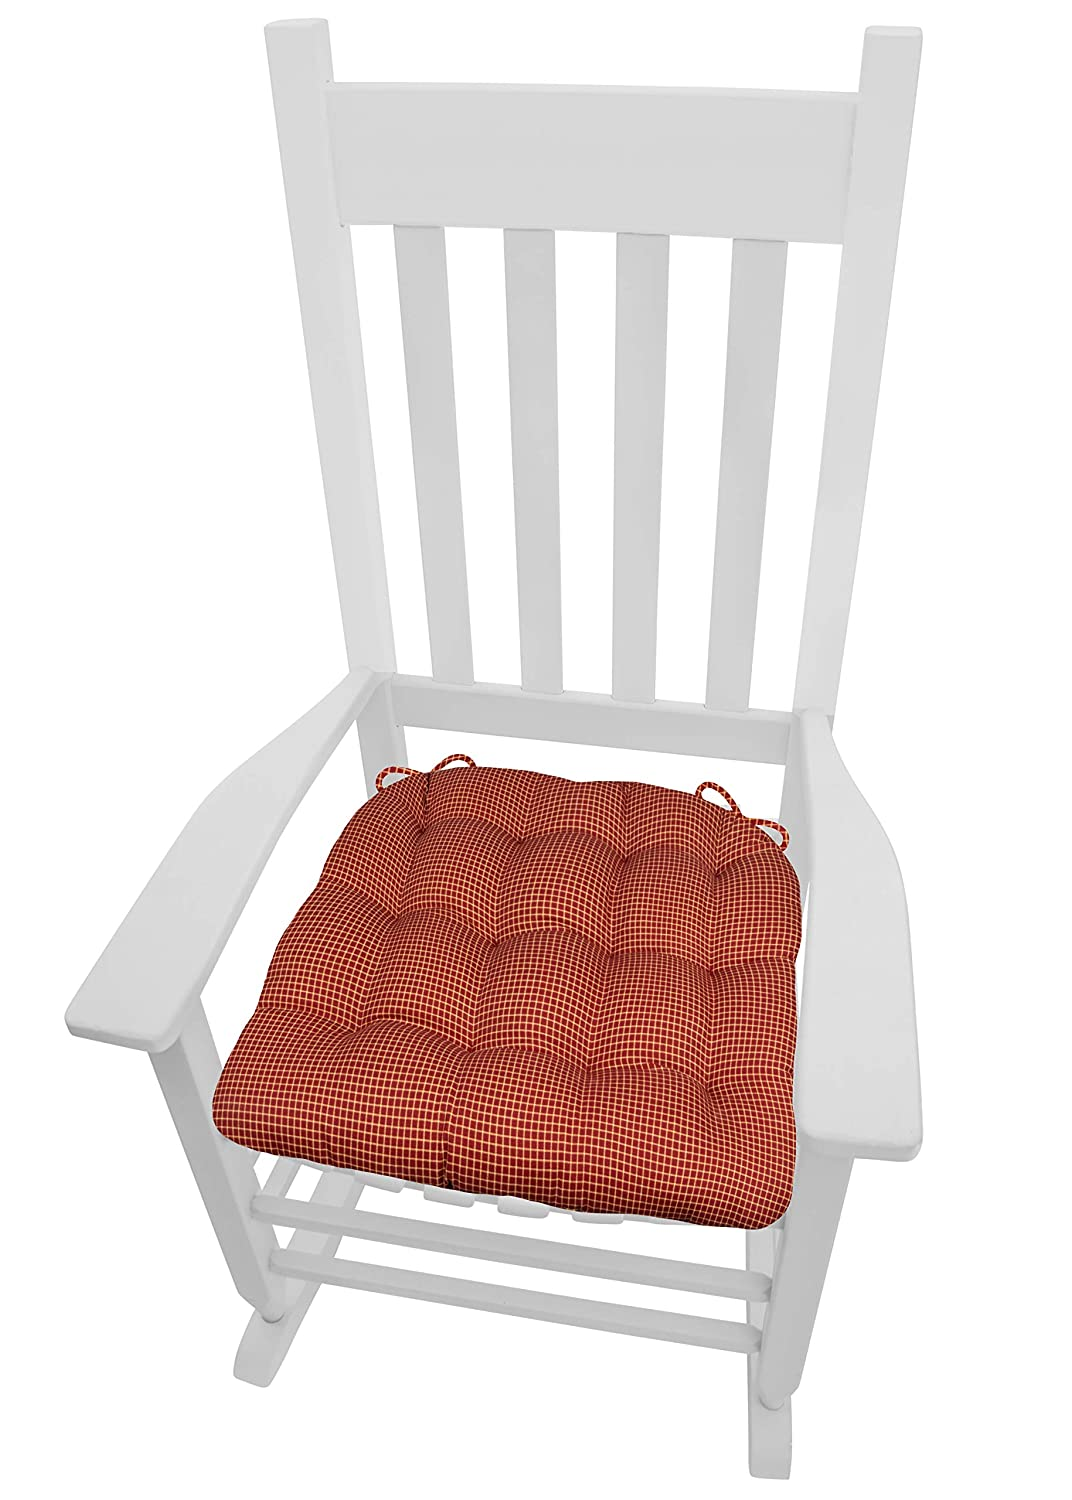 Barnett Home Decor Capri Red Plaid XXL Rocking Chair Seat Cushion w Ties – 100 Cotton – Tufted, Reversible, Machine Washable – Made in USA Jumbo Extra-Extra-Large Red Neutral Check